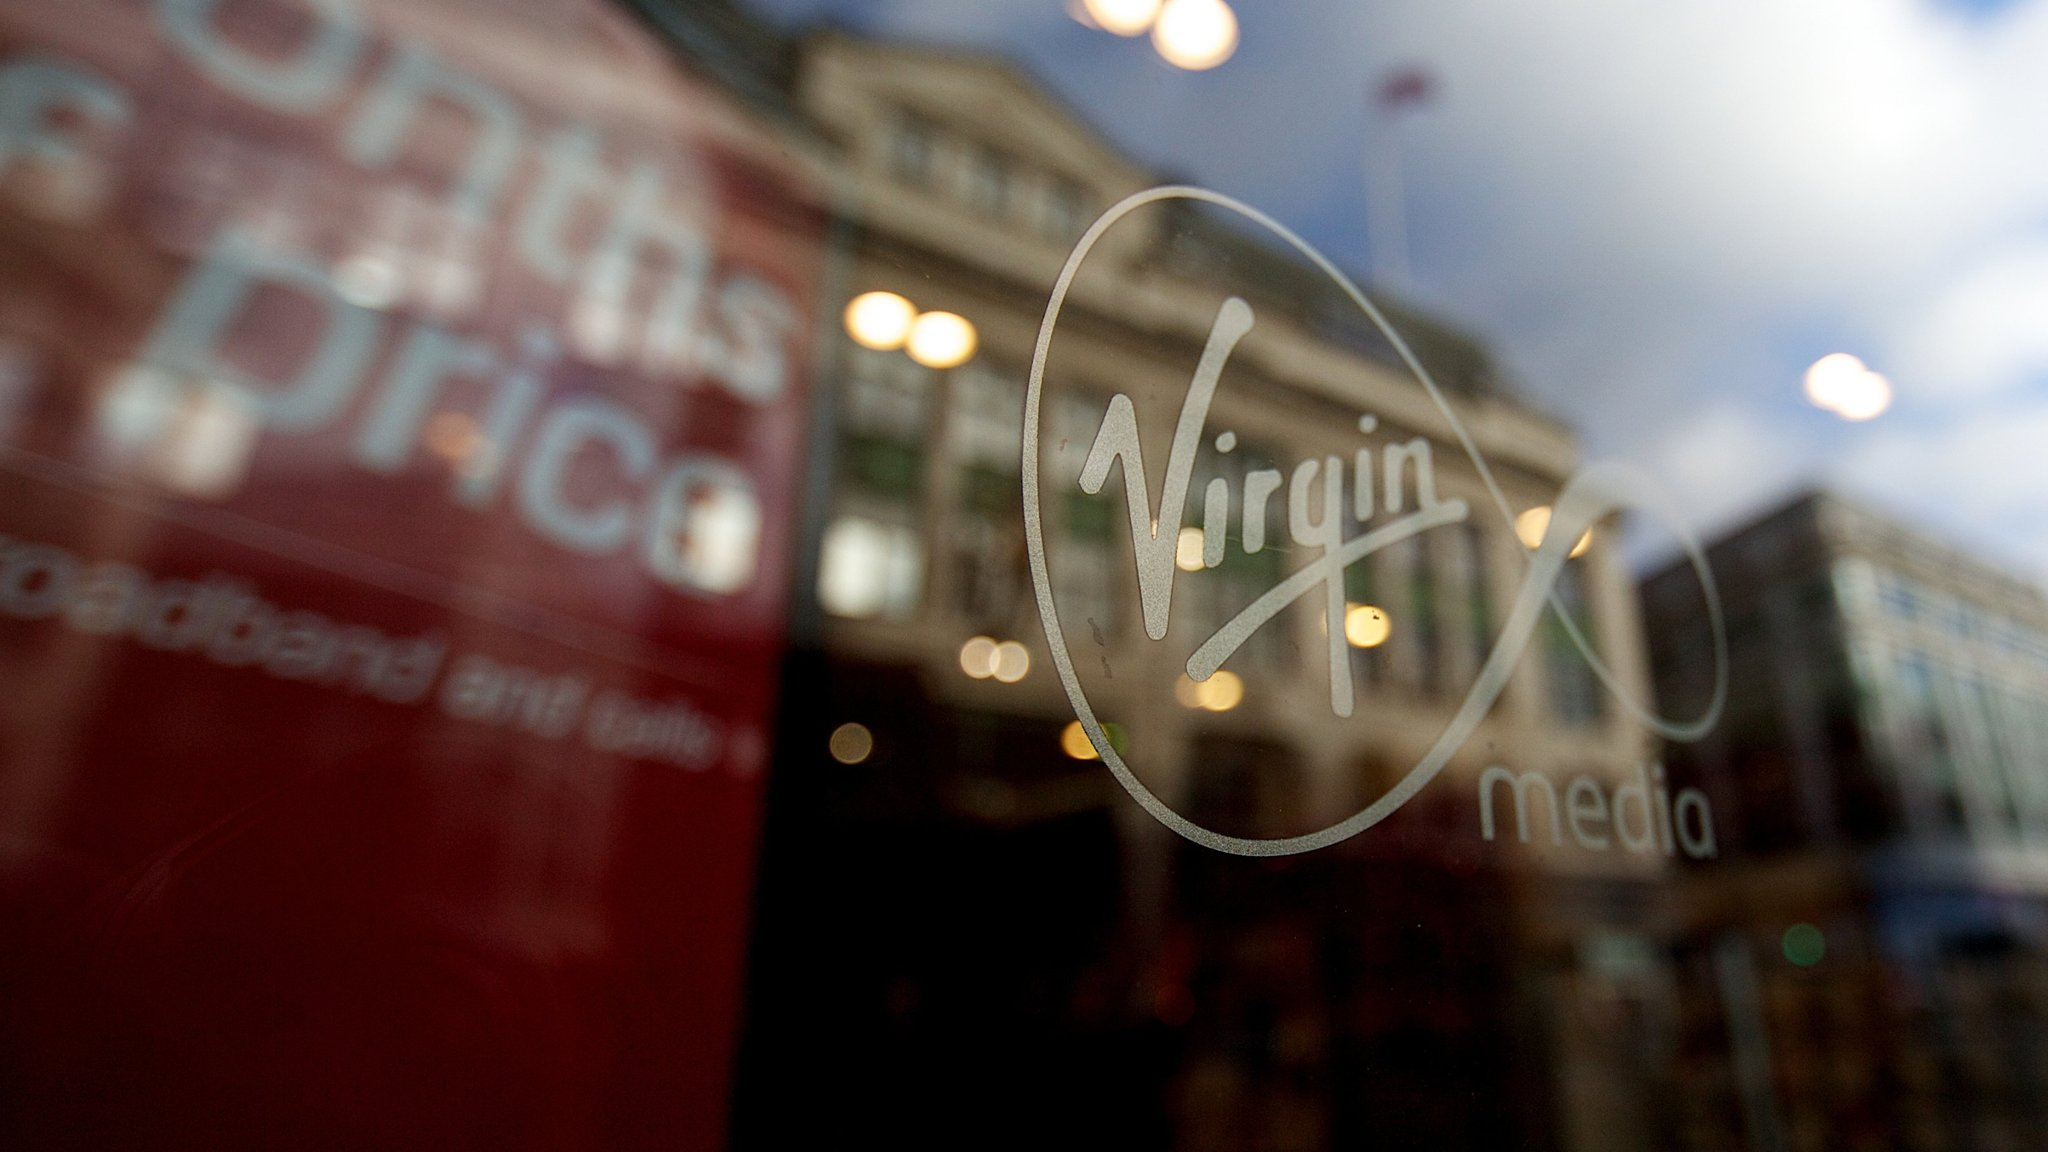 Virgin to test net neutrality rules with free WhatsApp access